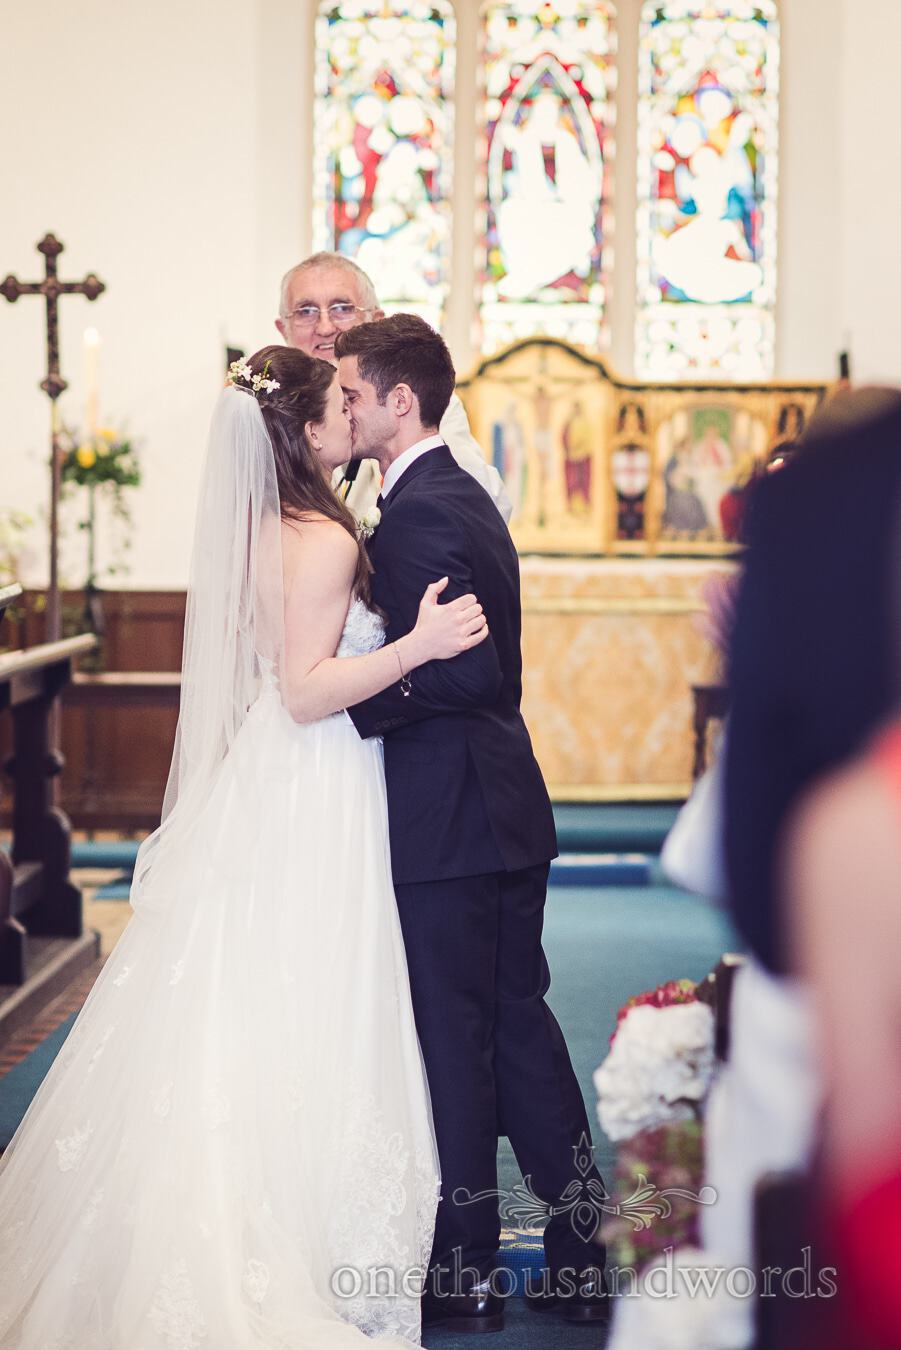 First kiss from wedding at Sopley Mill